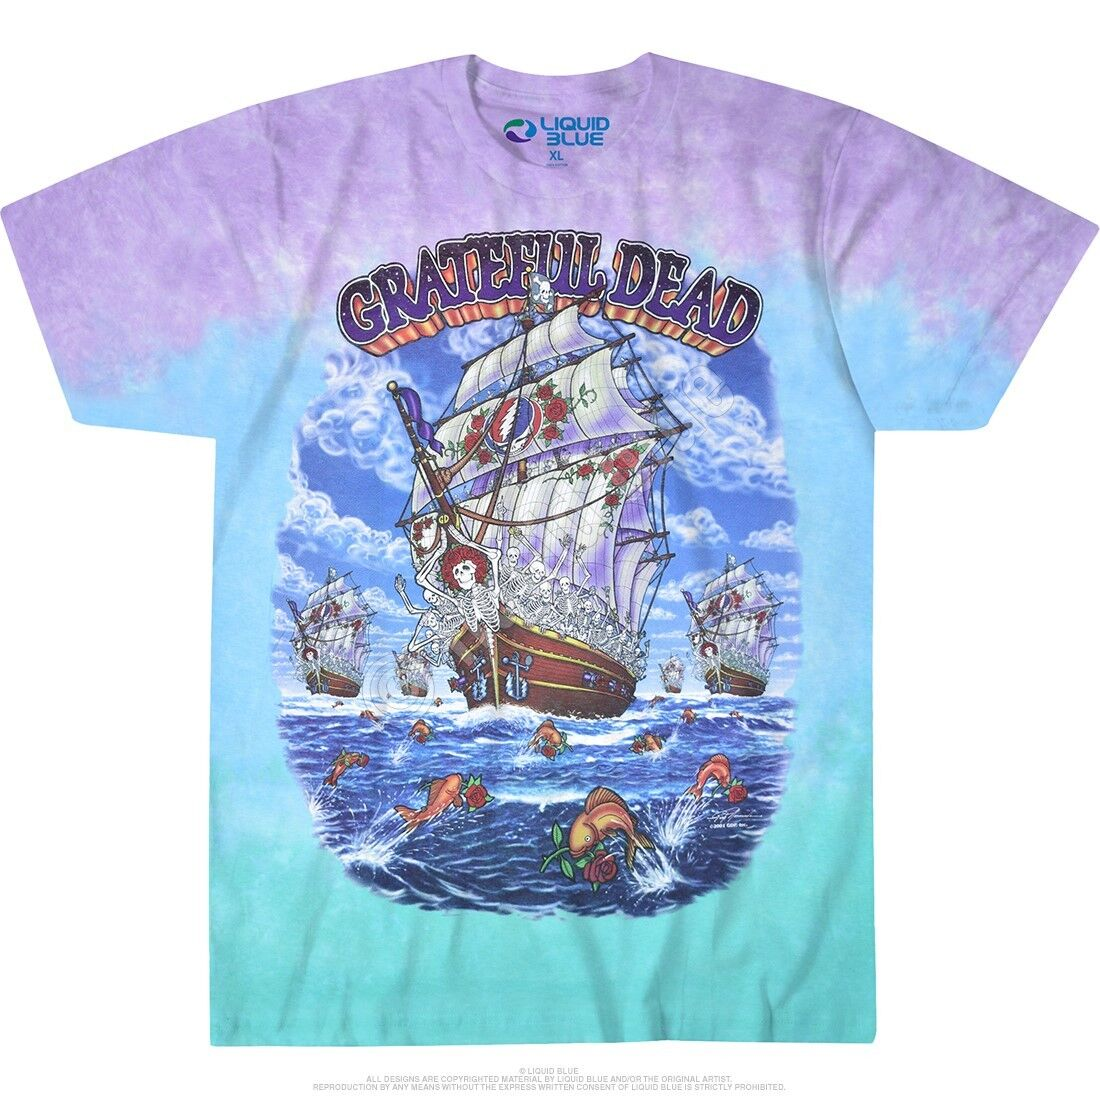 586f4e61dc4 Details about New GRATEFUL DEAD Ship Of Fools Tie Dye T Shirt - Plus Sizes  3XL-6XL